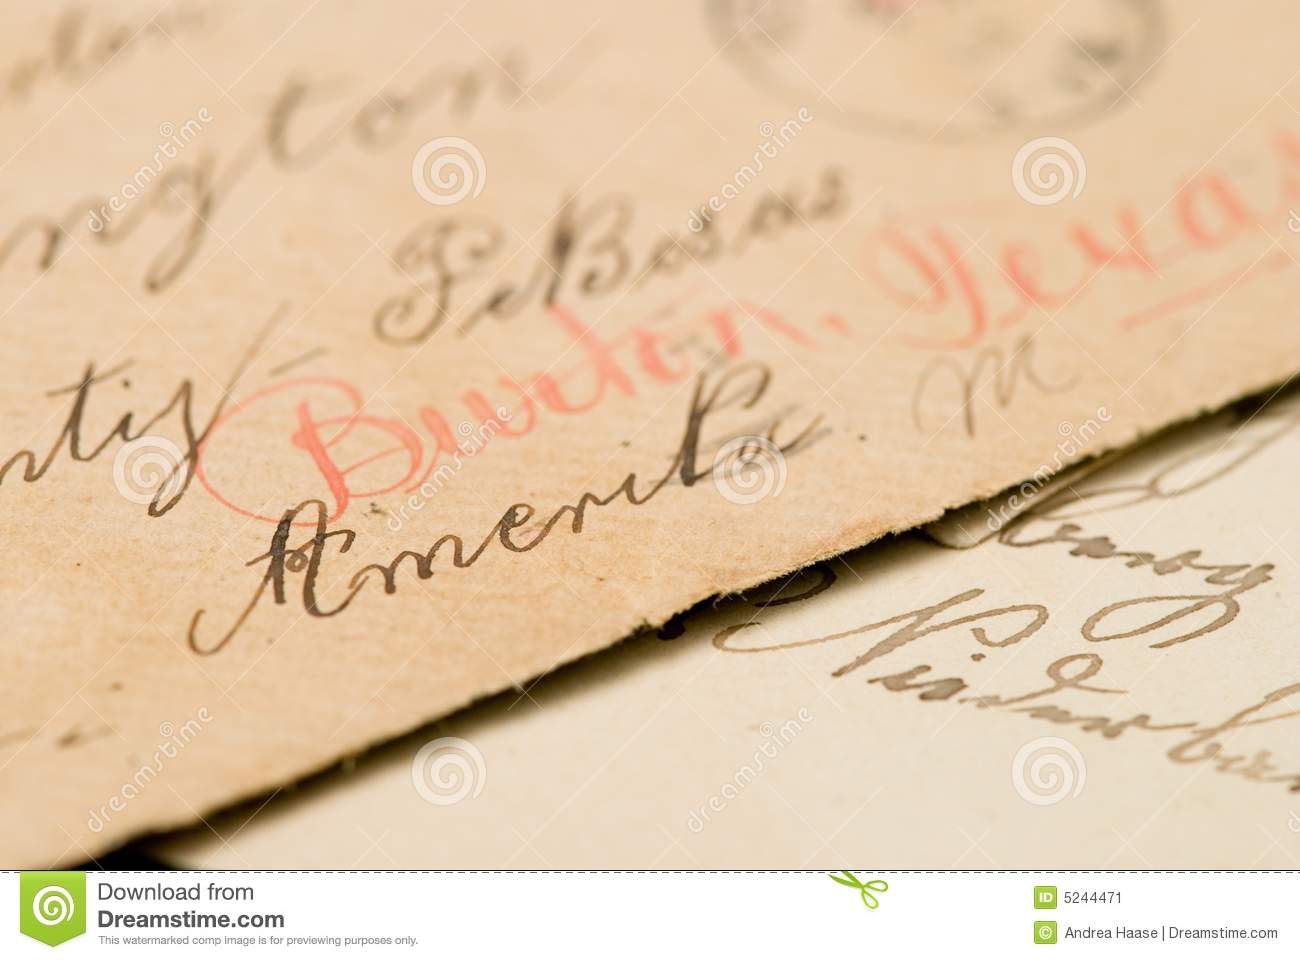 Handwritten Address On Envelope Stock Image Image Of Personal